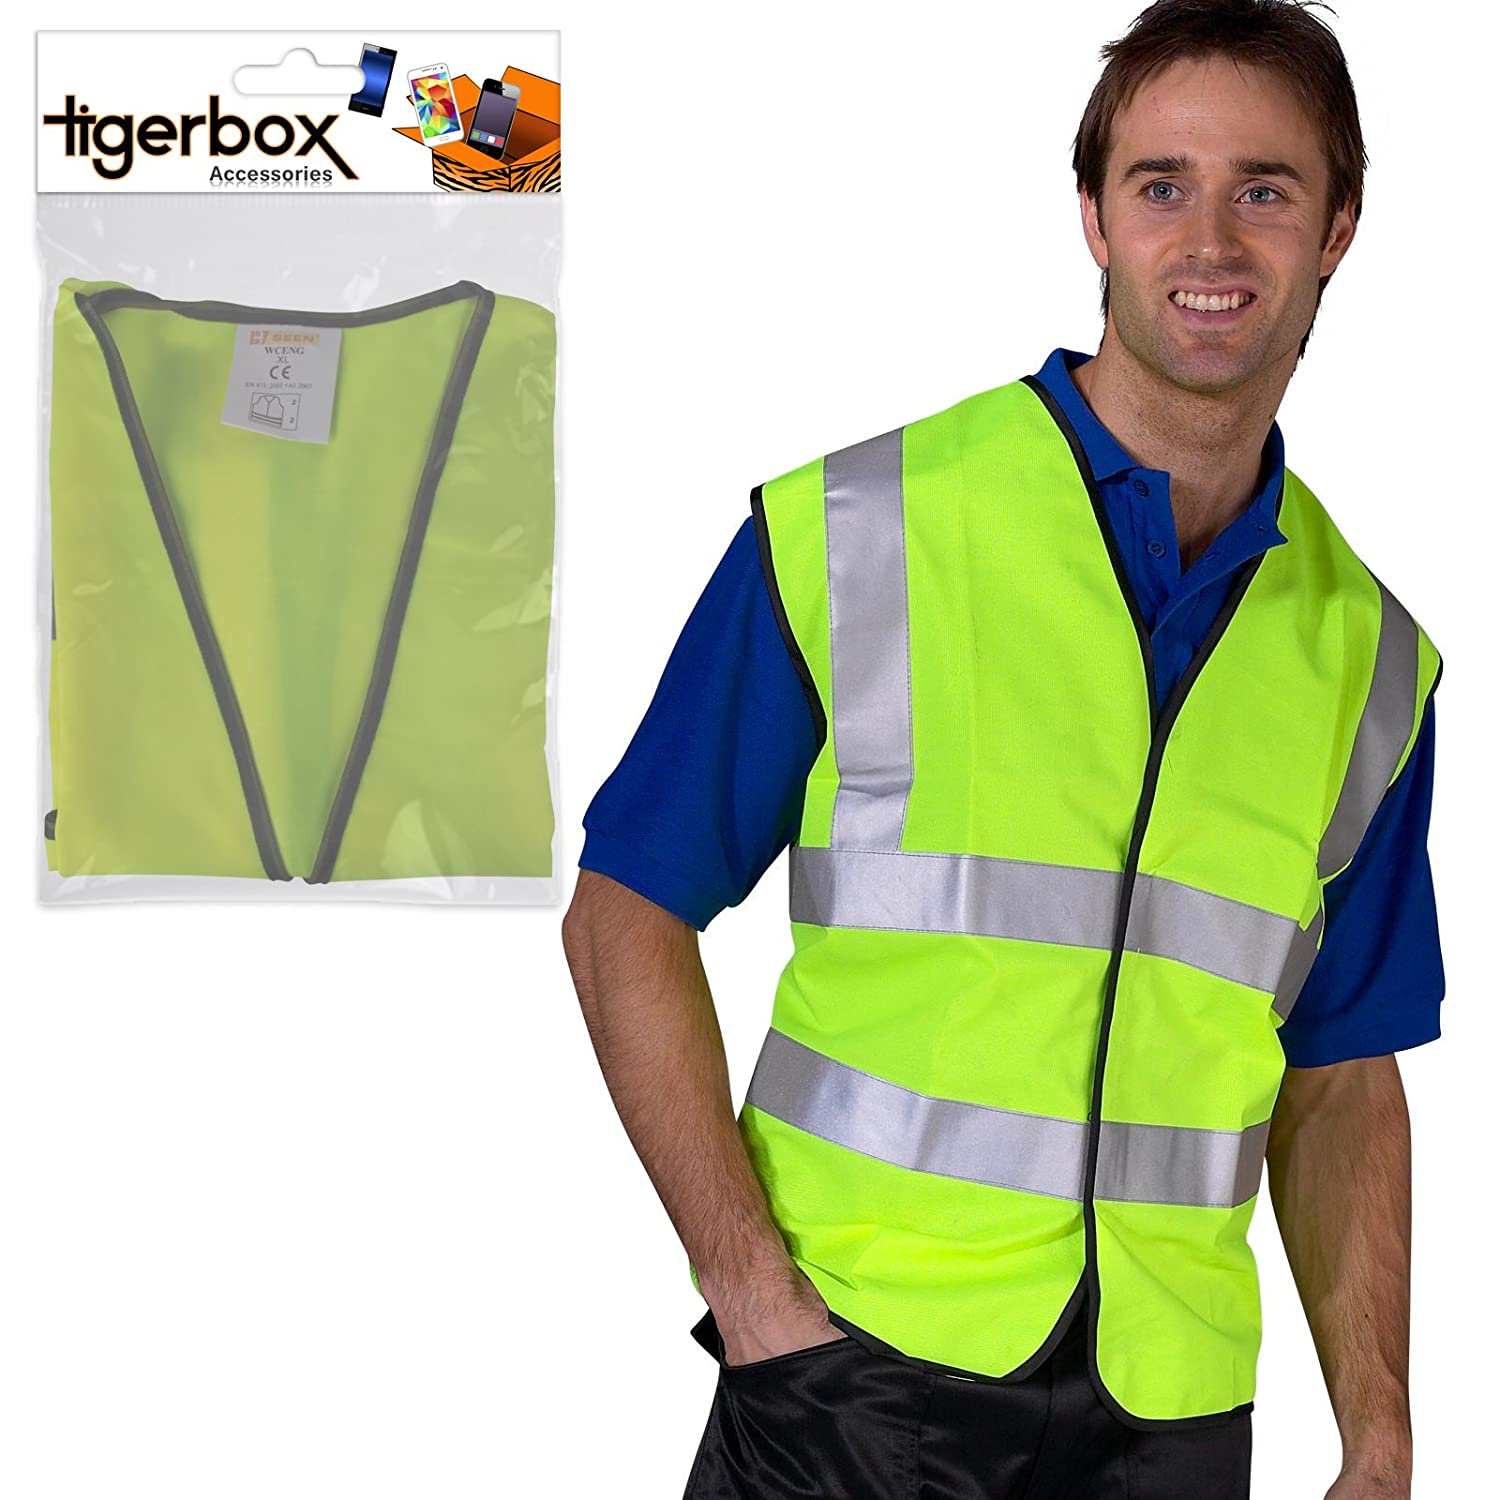 Bike Biker Yellow Driving XL Road Side Motorbike Motorcycle Suitable For Cycling Tigerbox/® Be Safe Be Seen Adult Hi-Vis Safety Vest Waistcoat